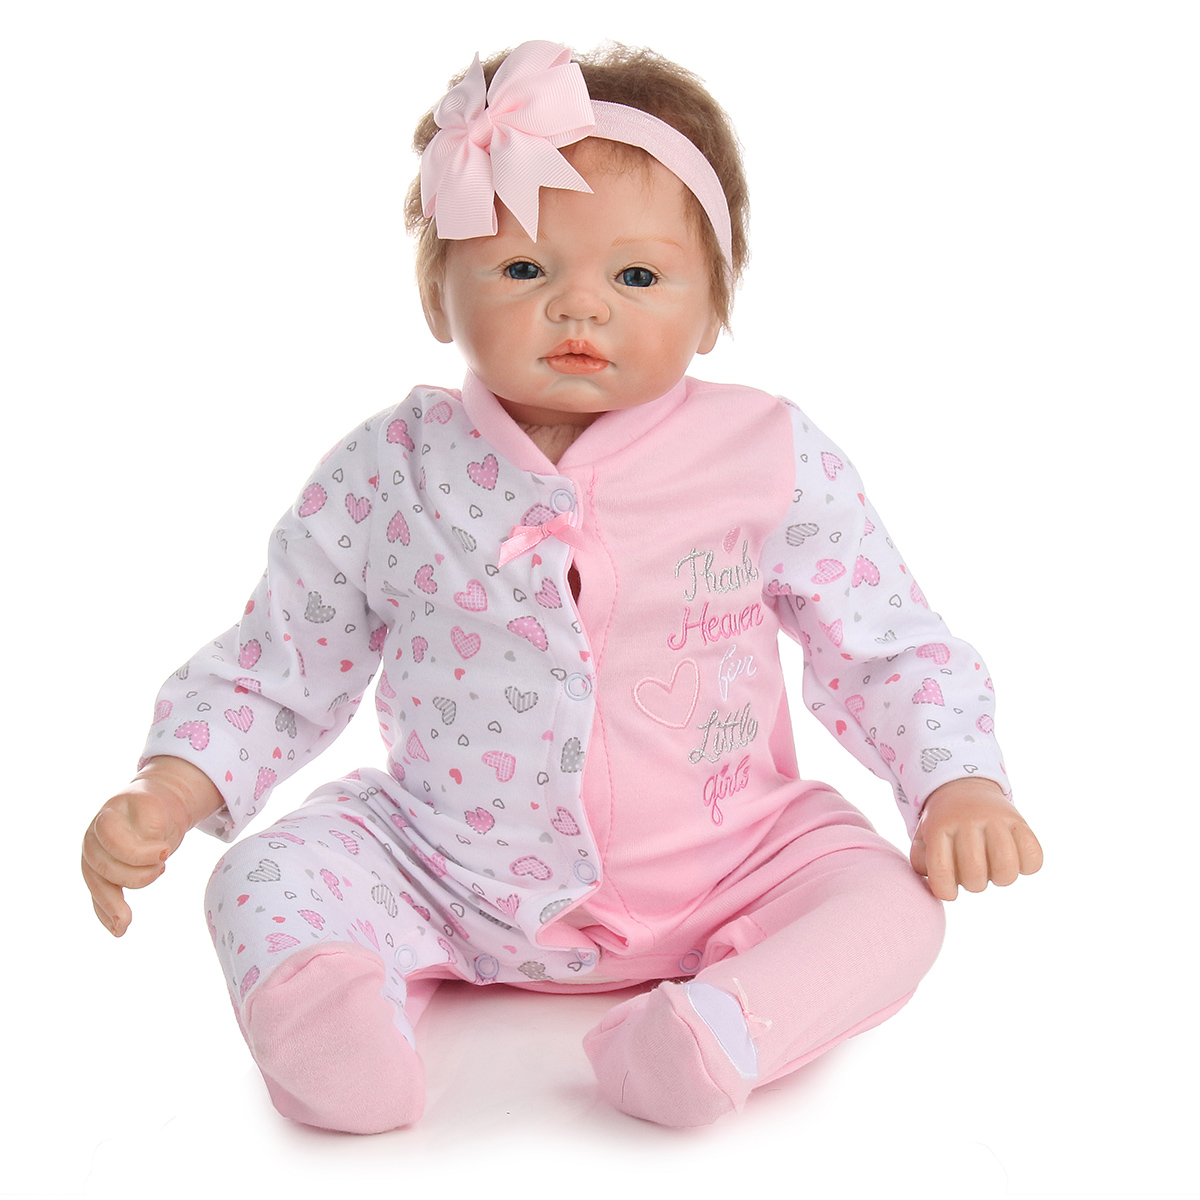 22inch Reborn Baby Girl Doll Silicone Handmade Girl Lifelike Play House Toy